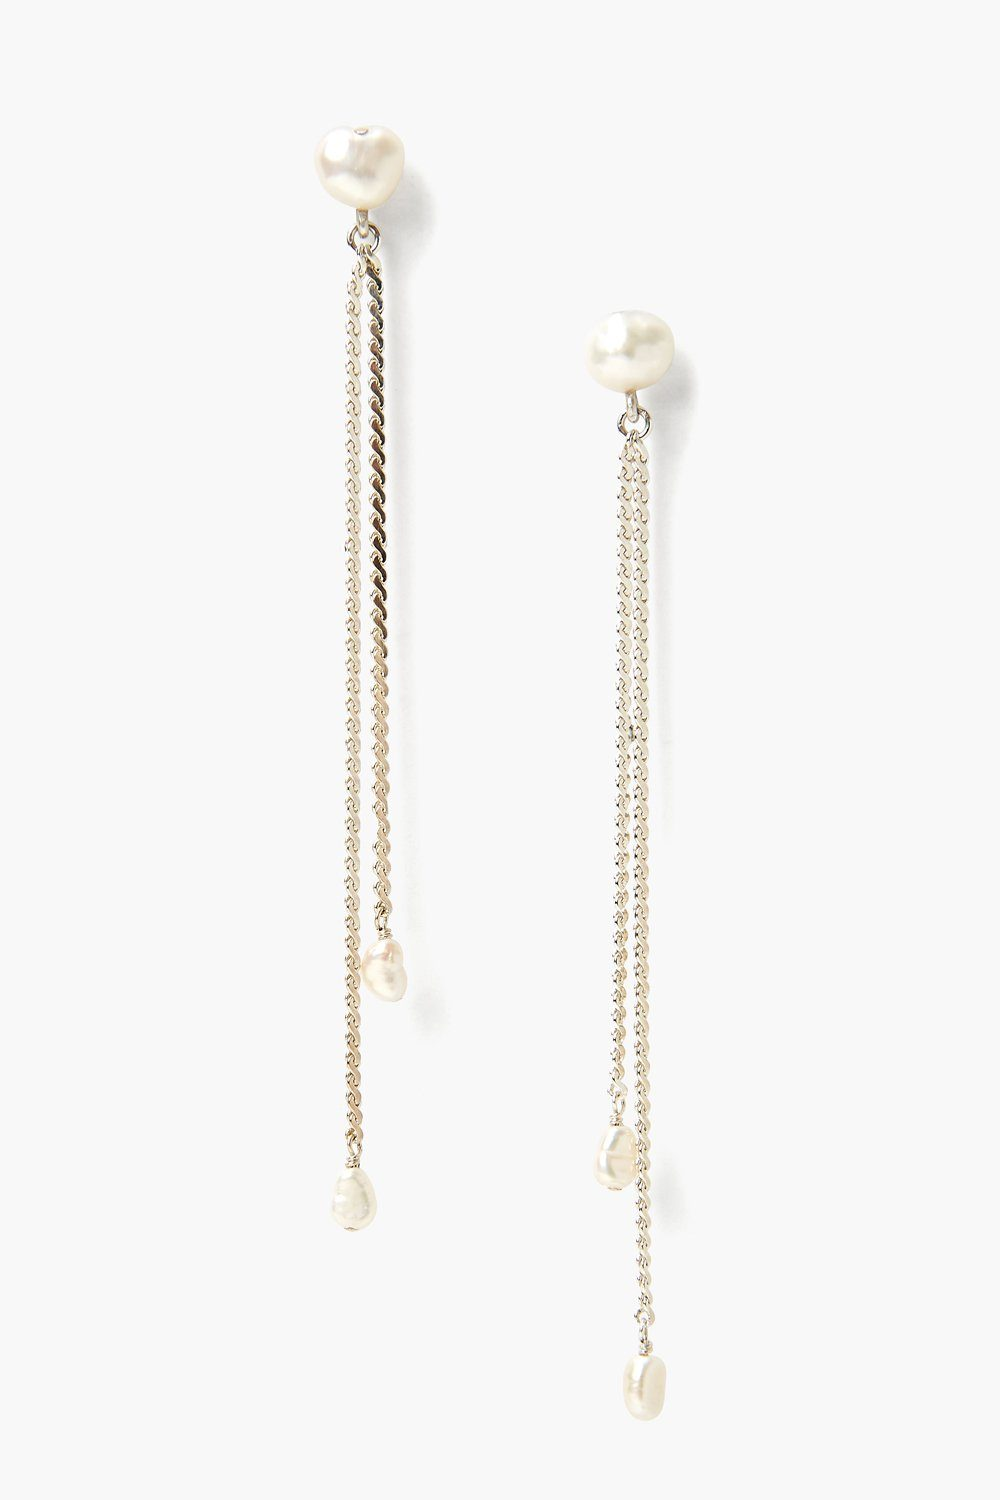 Silver Rope and Pearl Duster Earrings